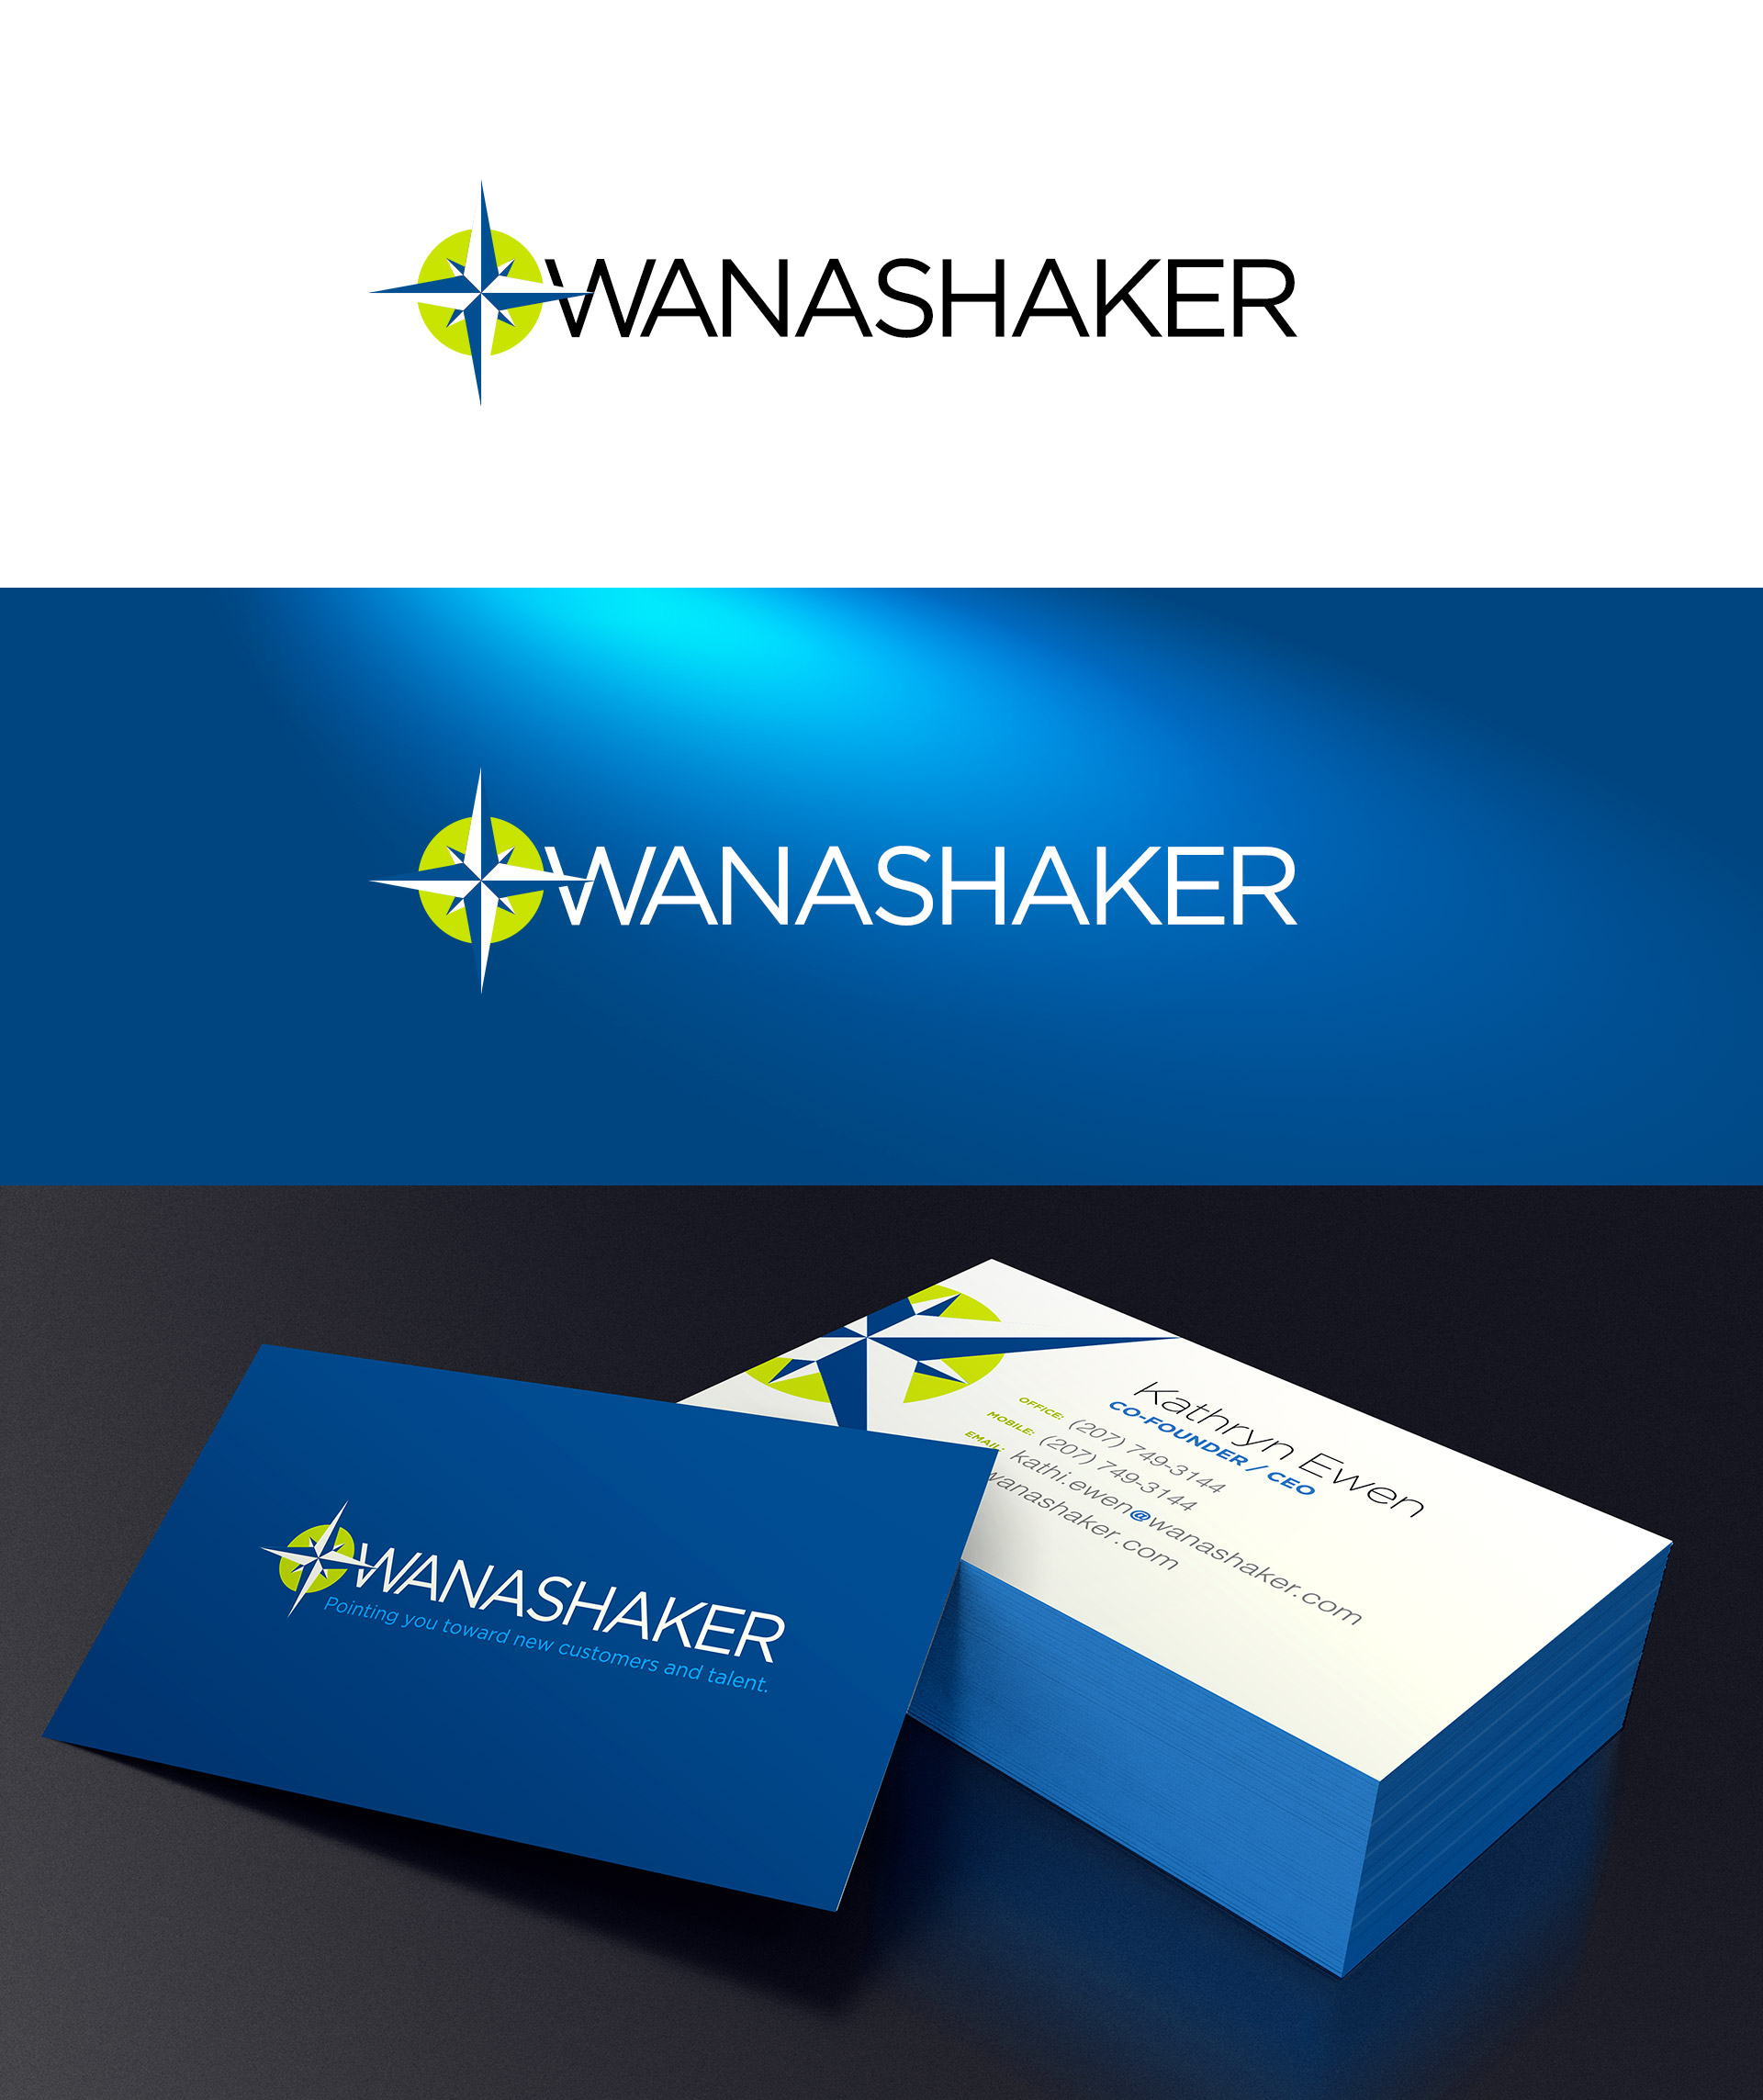 BRAND IDENTITY - Both a logo and business card concept was developed in the spirit of their adventurous message.